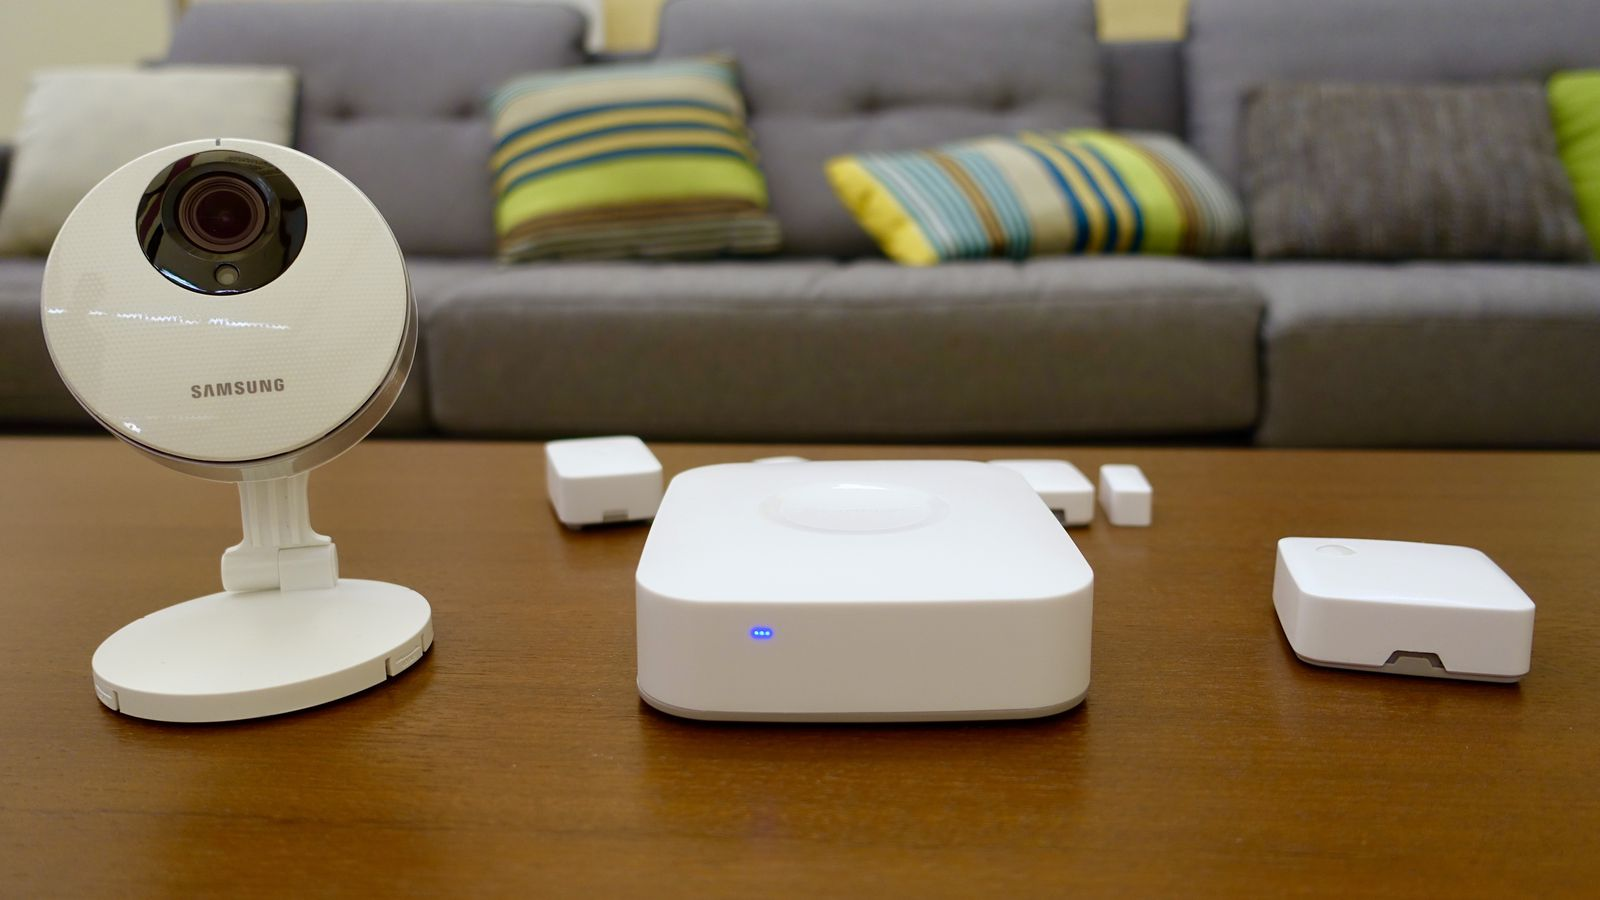 Researchers say there are serious security problems in Samsung's SmartThings